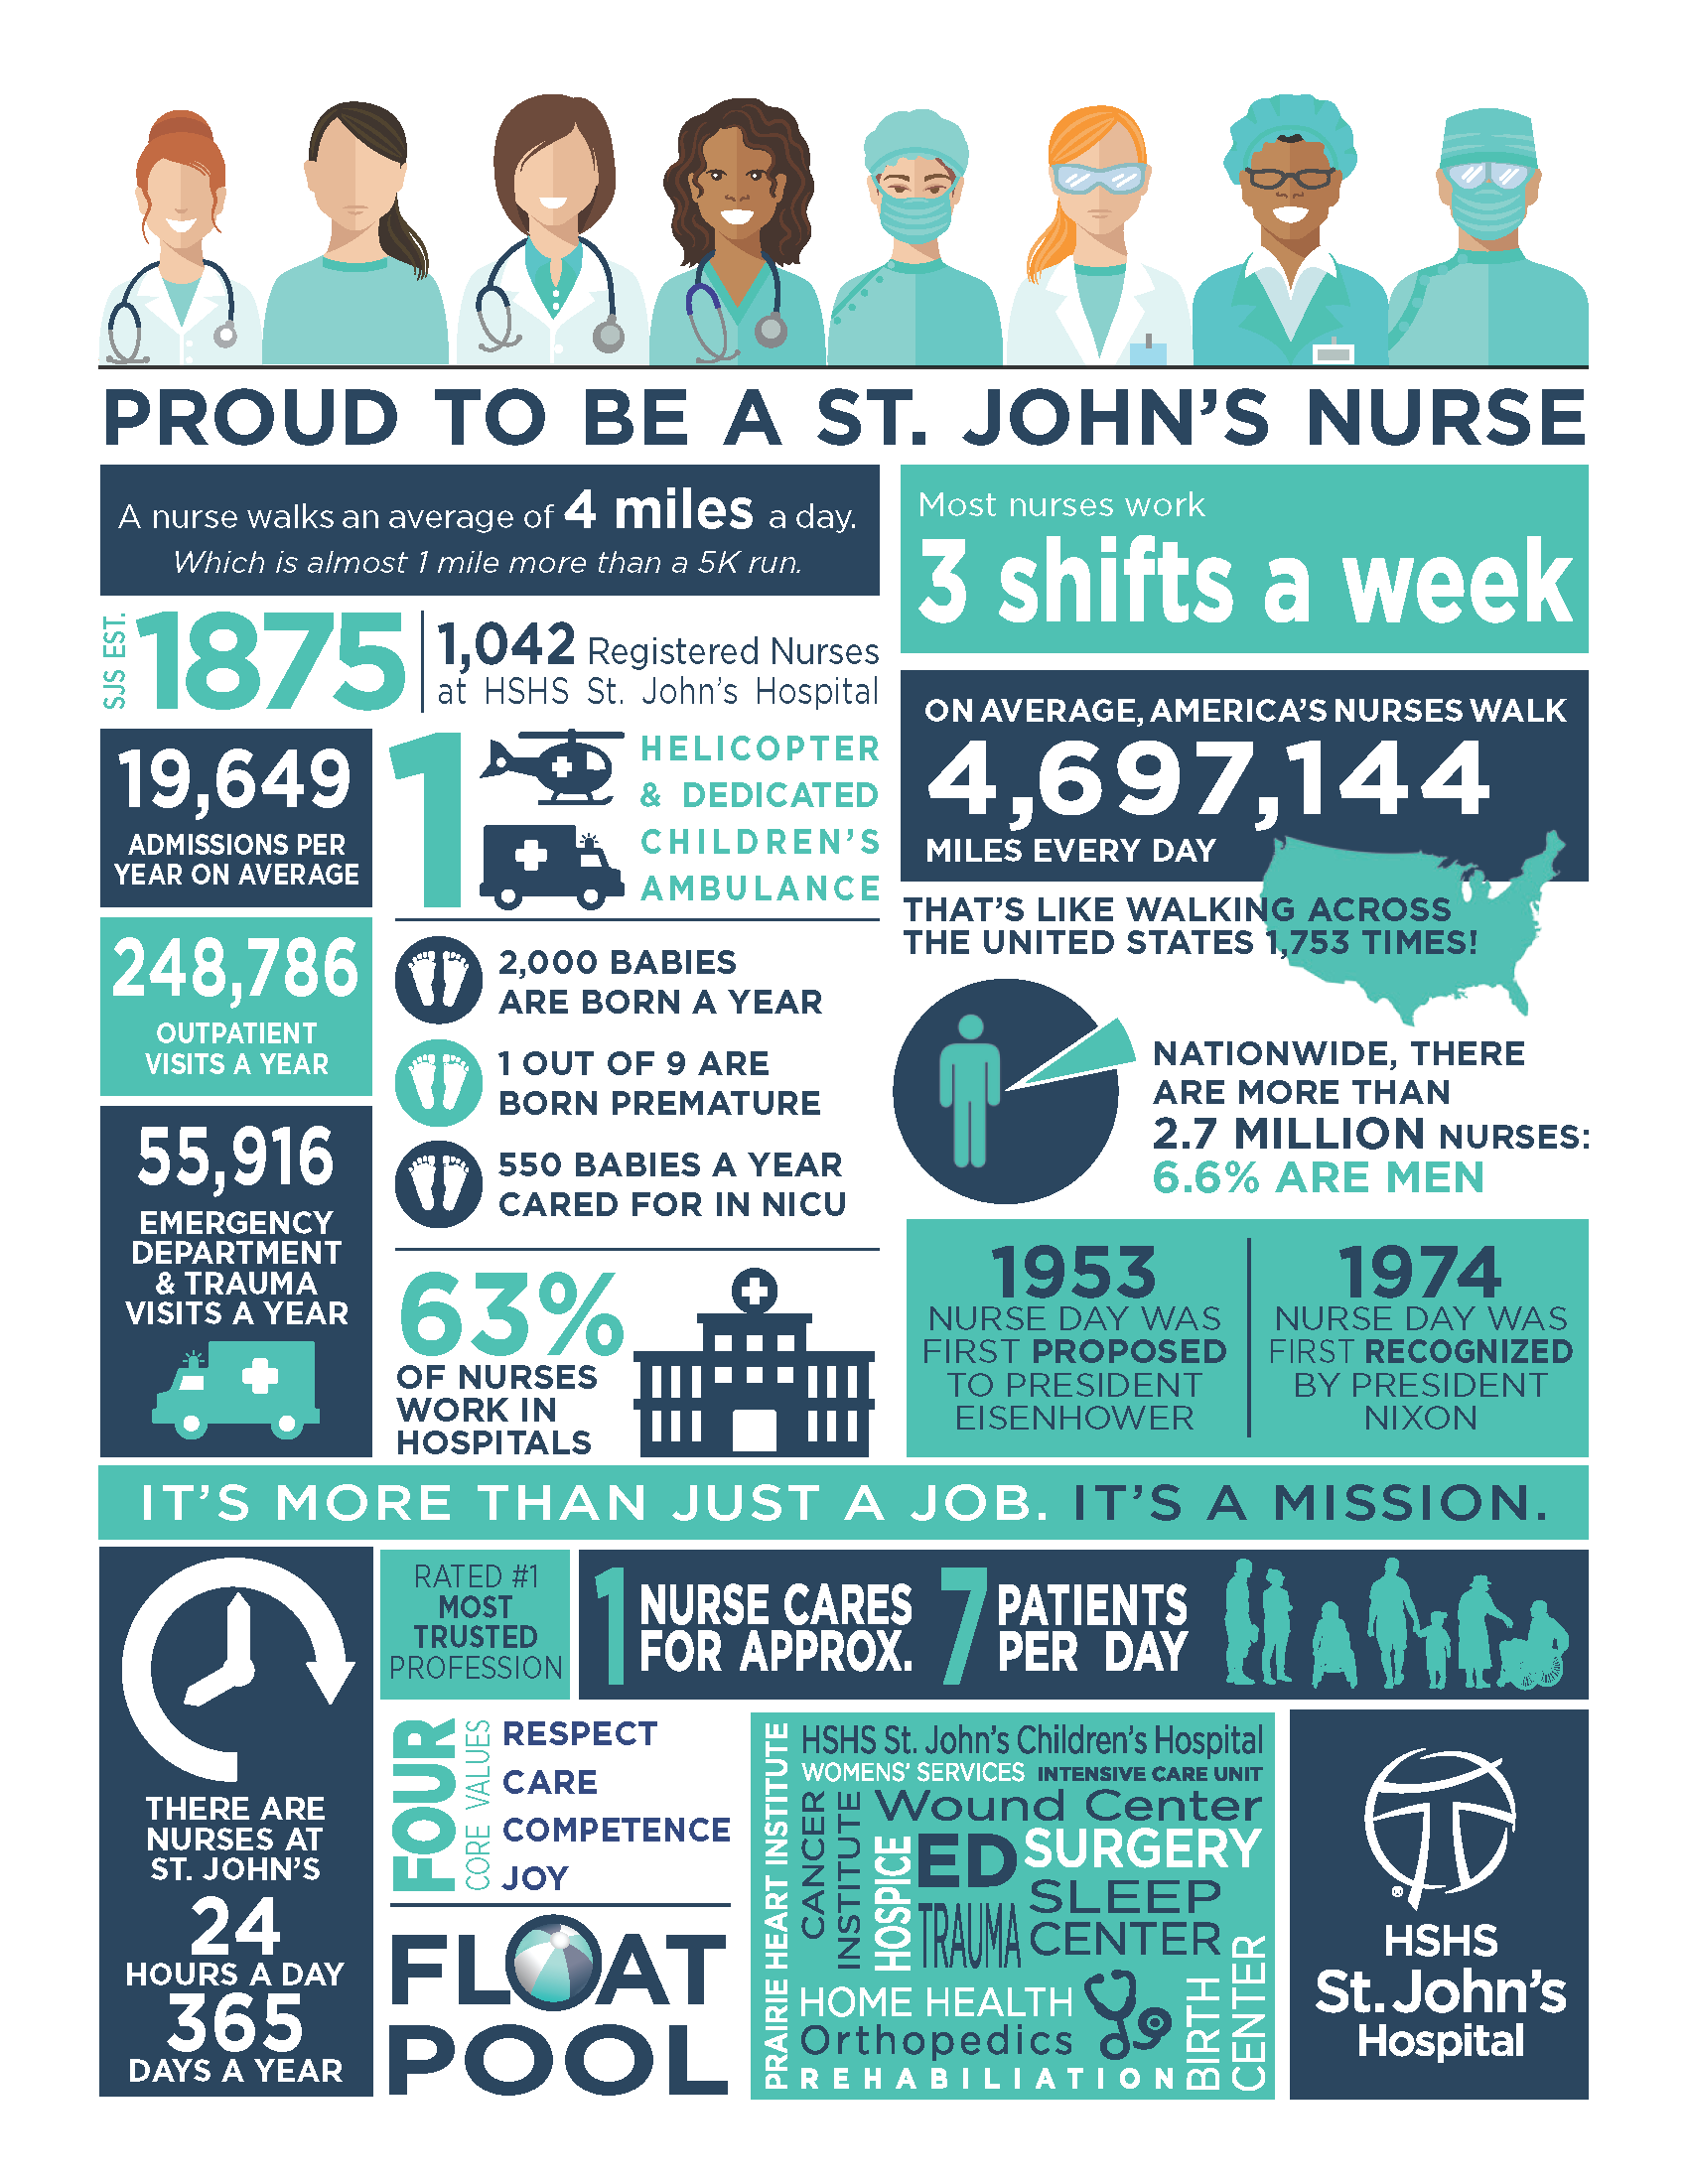 St. John's Nurse Facts